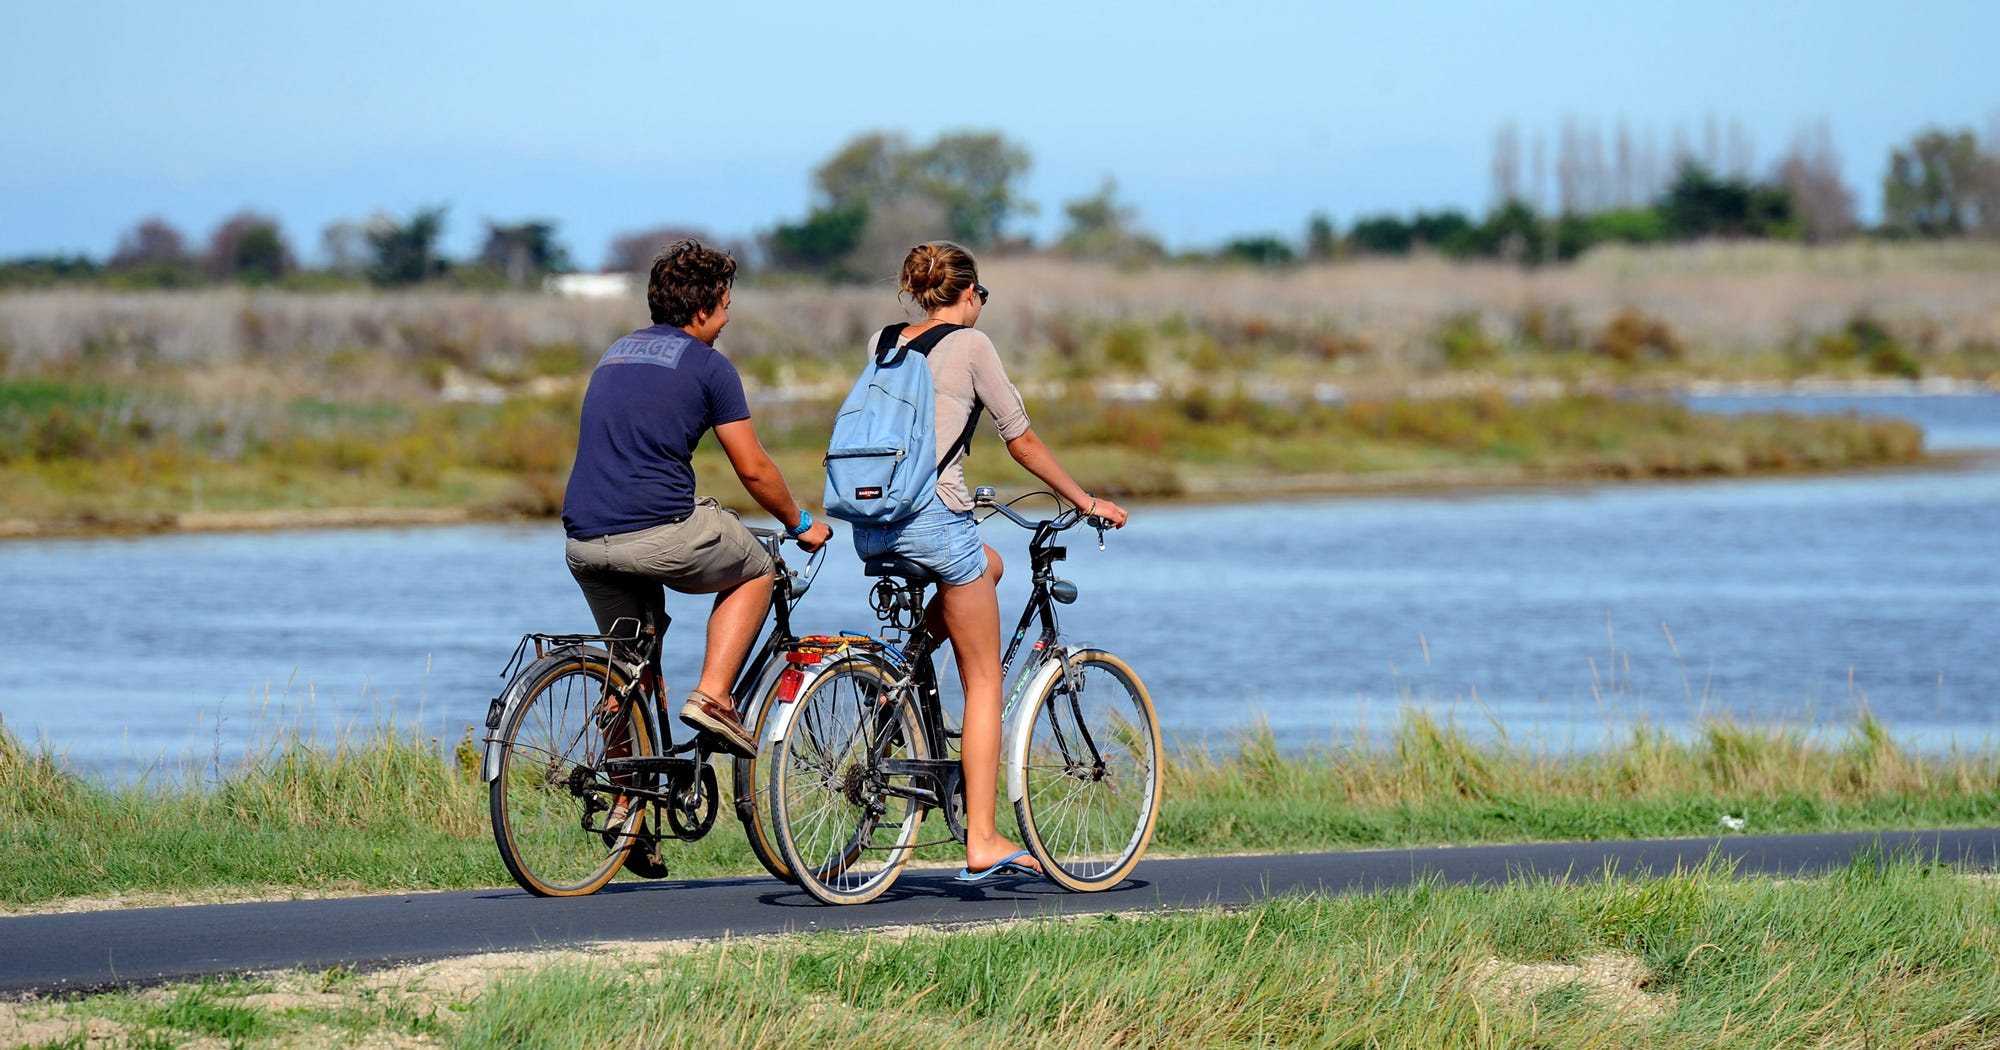 travel tips boyfriend, girlfriend, significant other